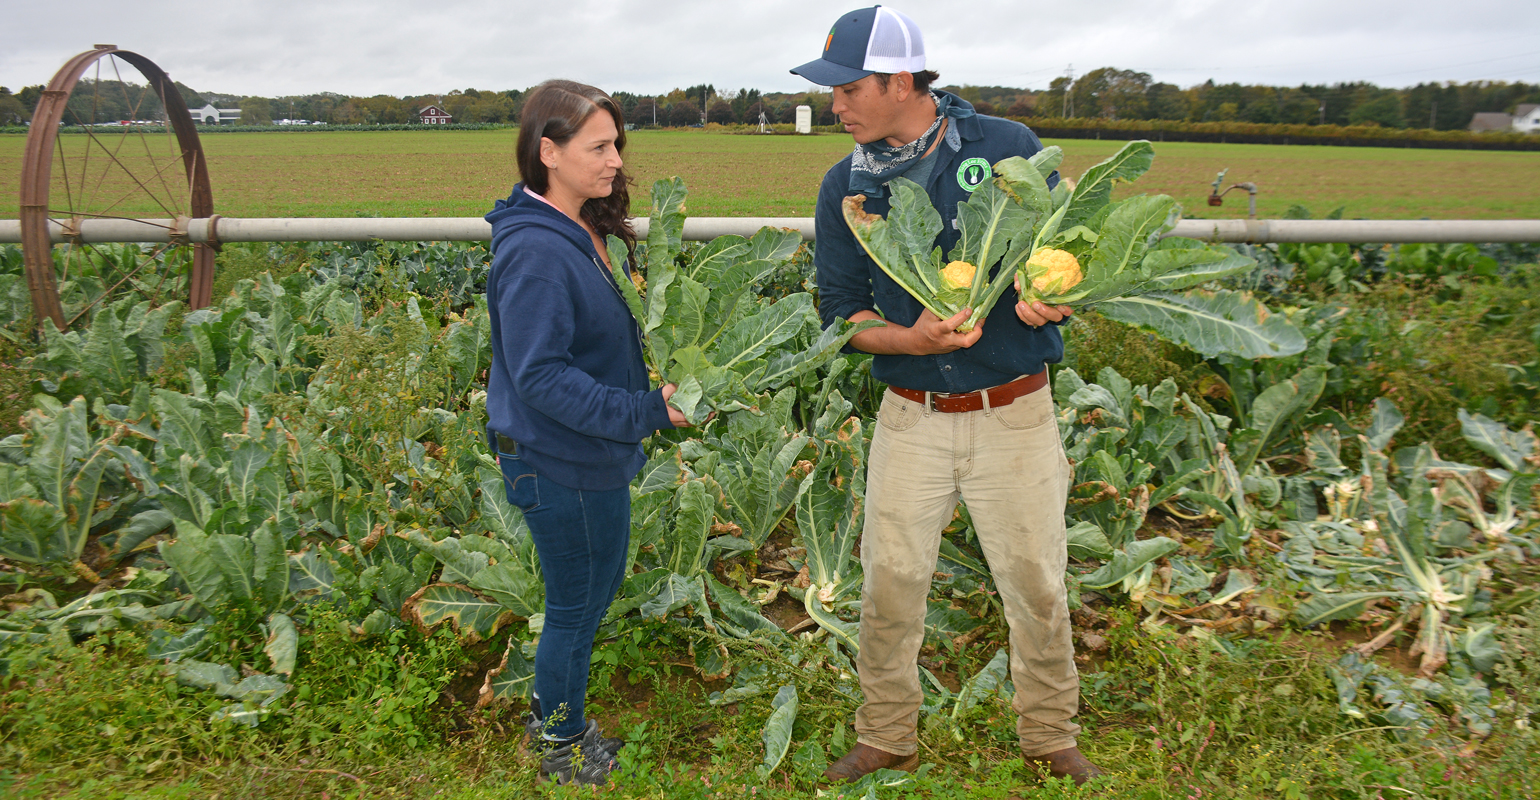 Lee and Ann Marie Calabro of the Suffolk County Soil & Conservation District talk on the farm